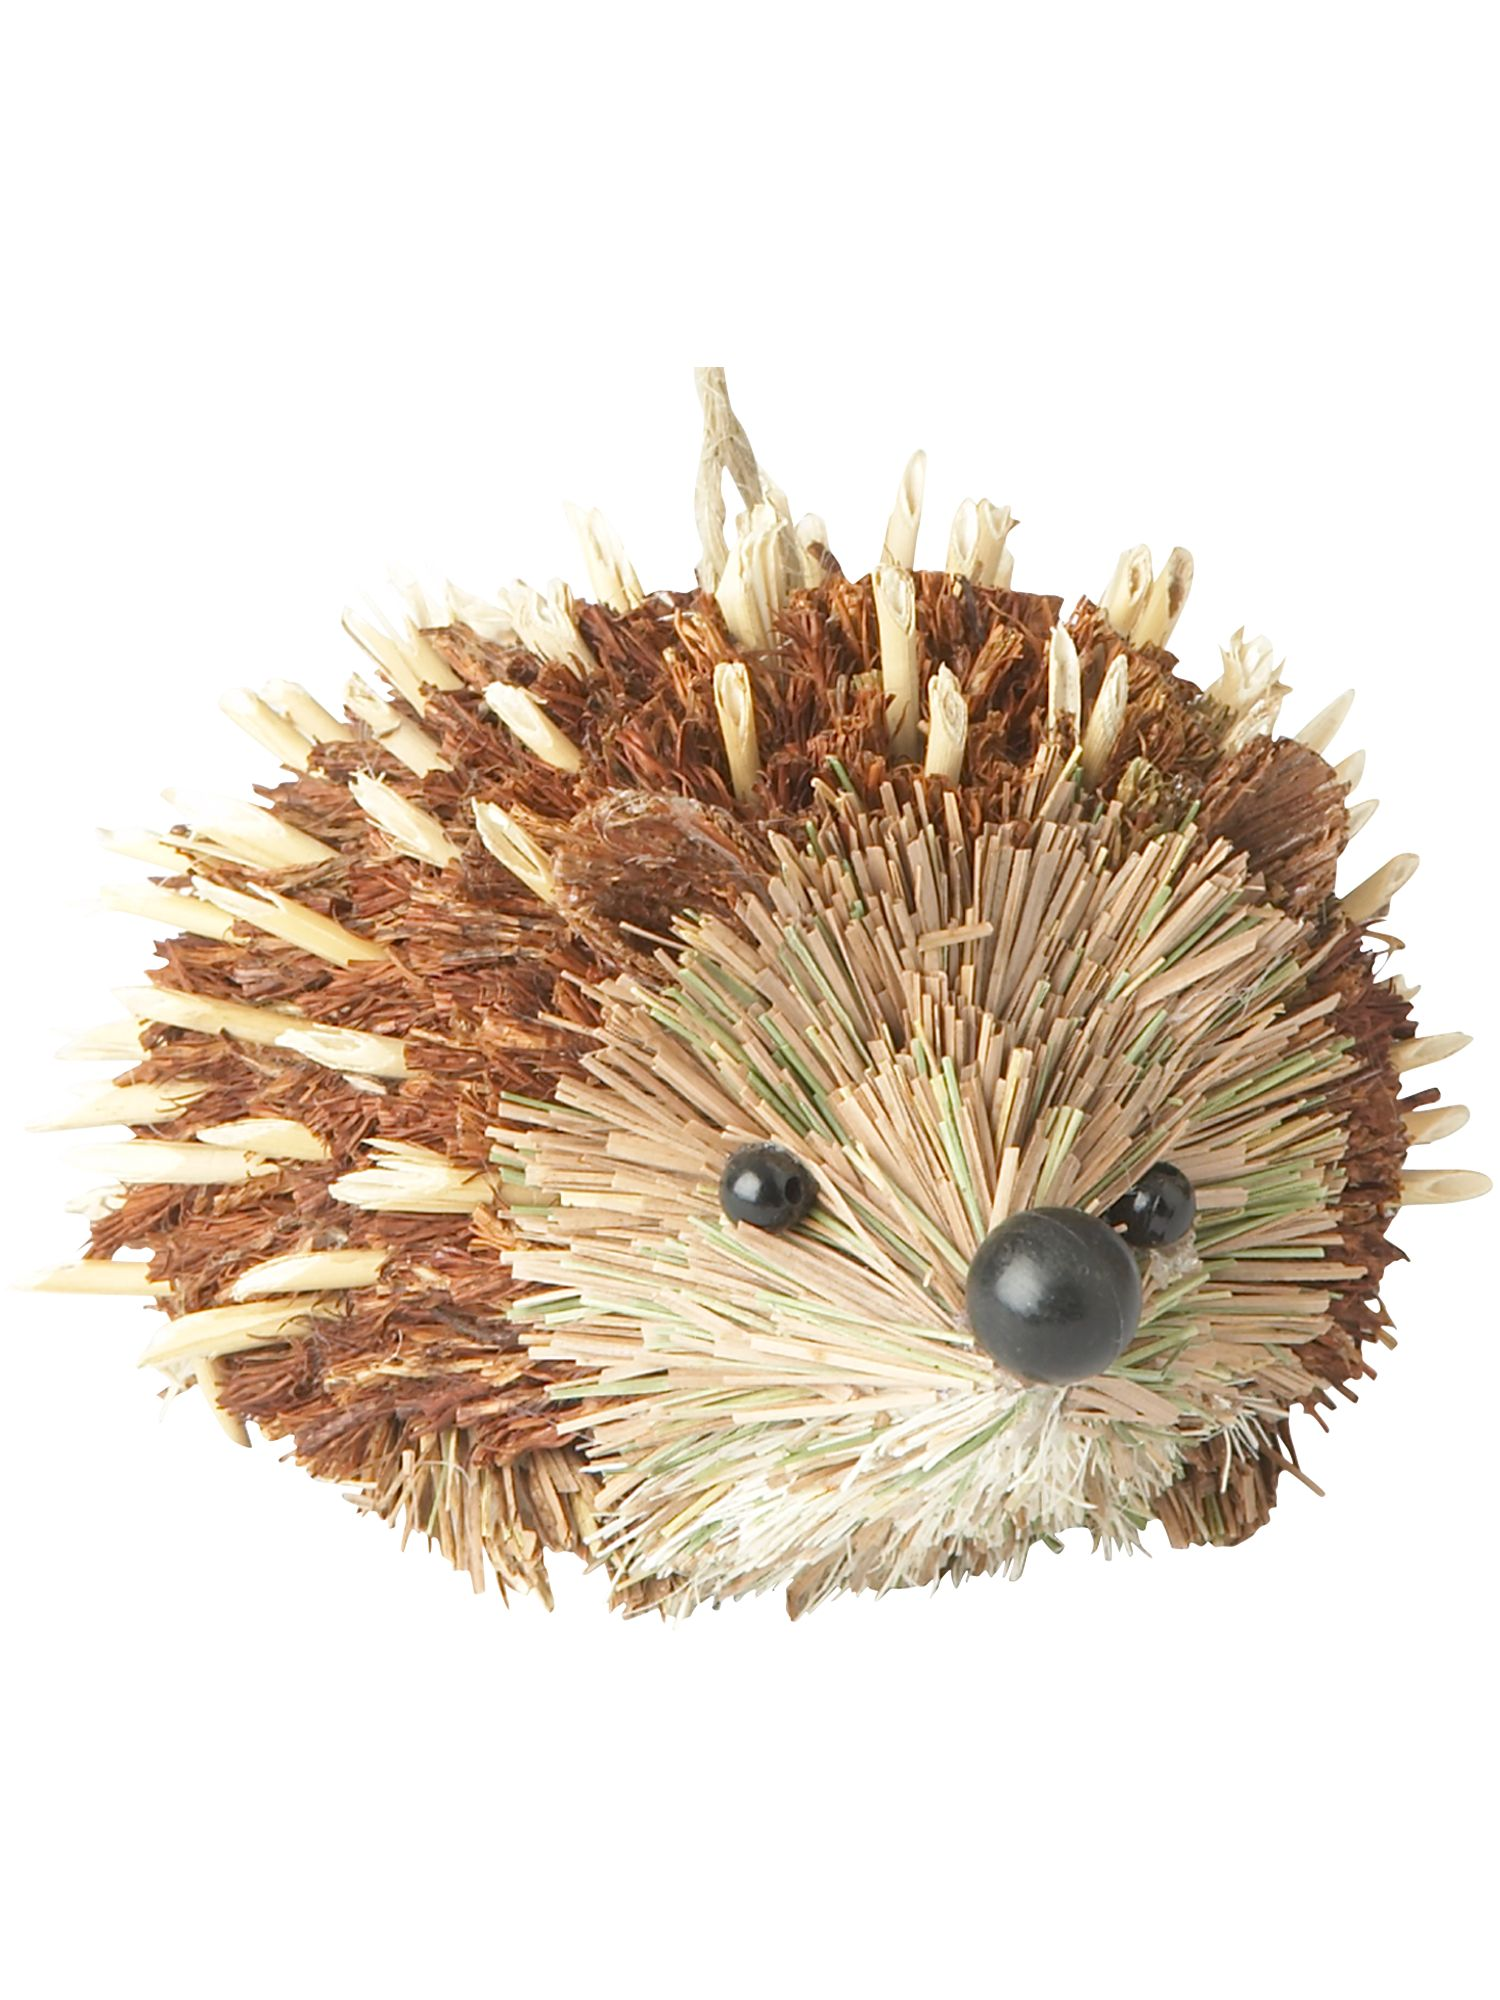 Nostalgia bristle hedgehog